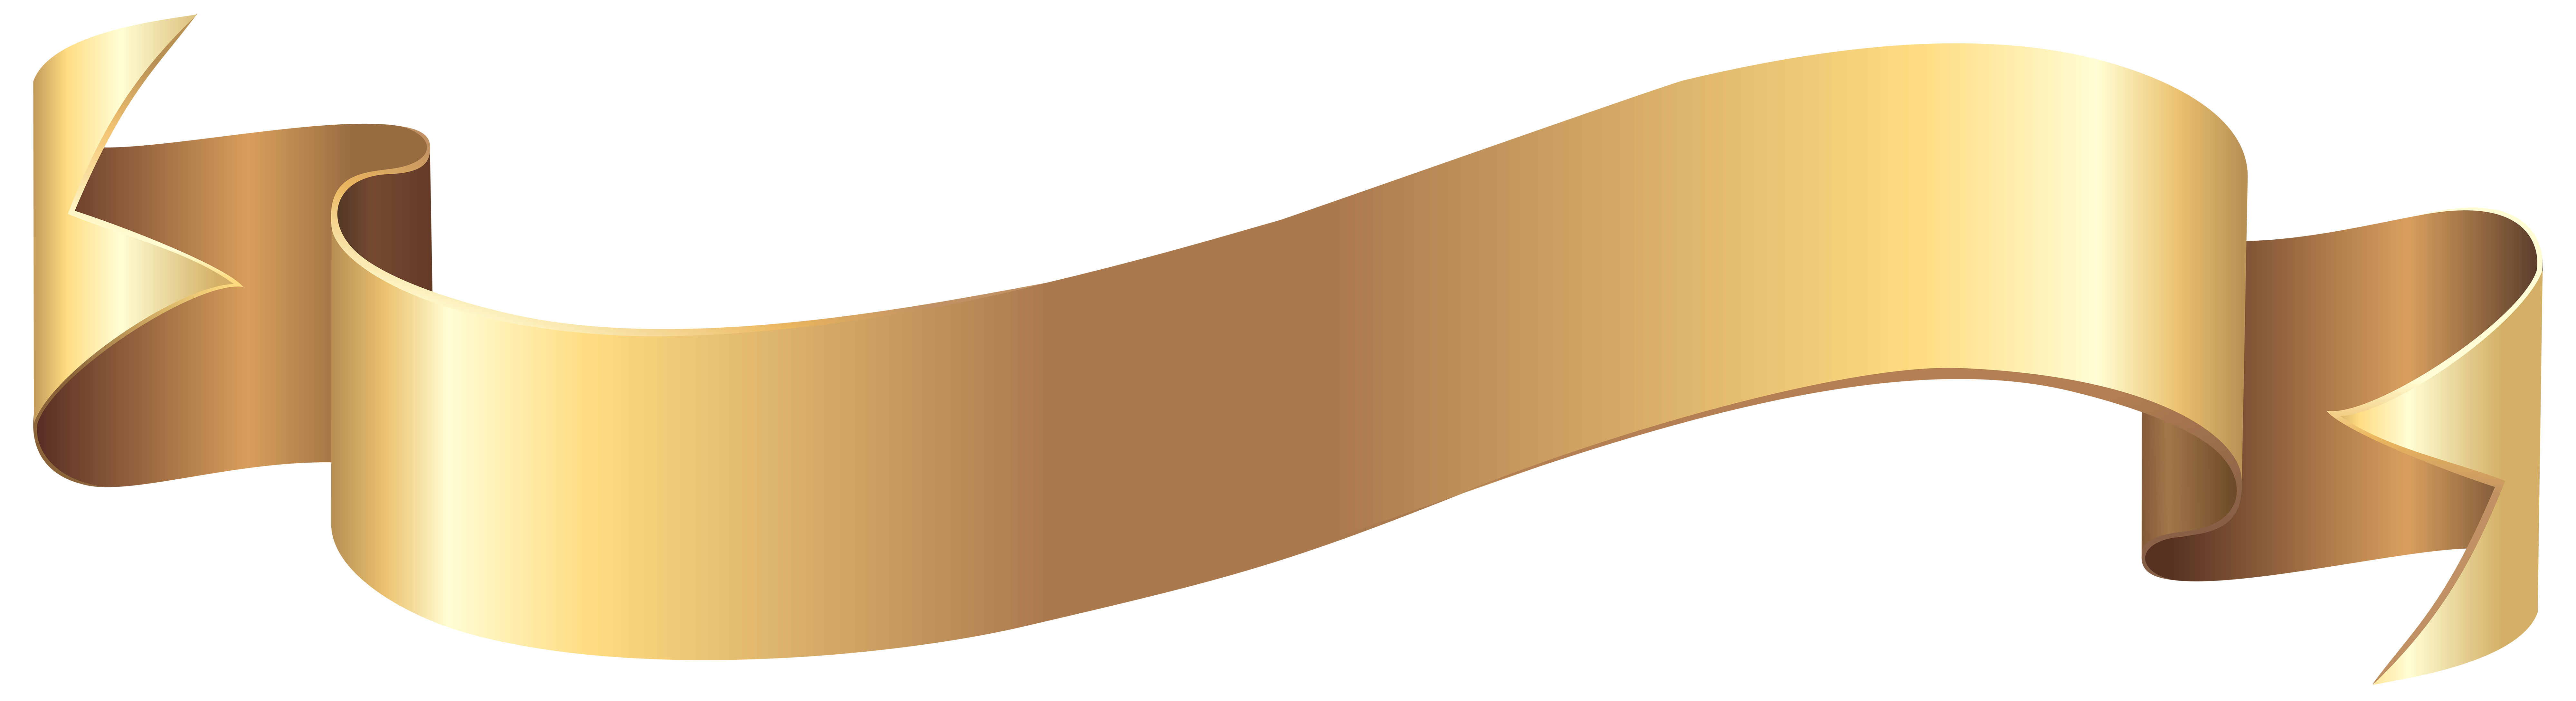 Png gold banner. Clip art image gallery